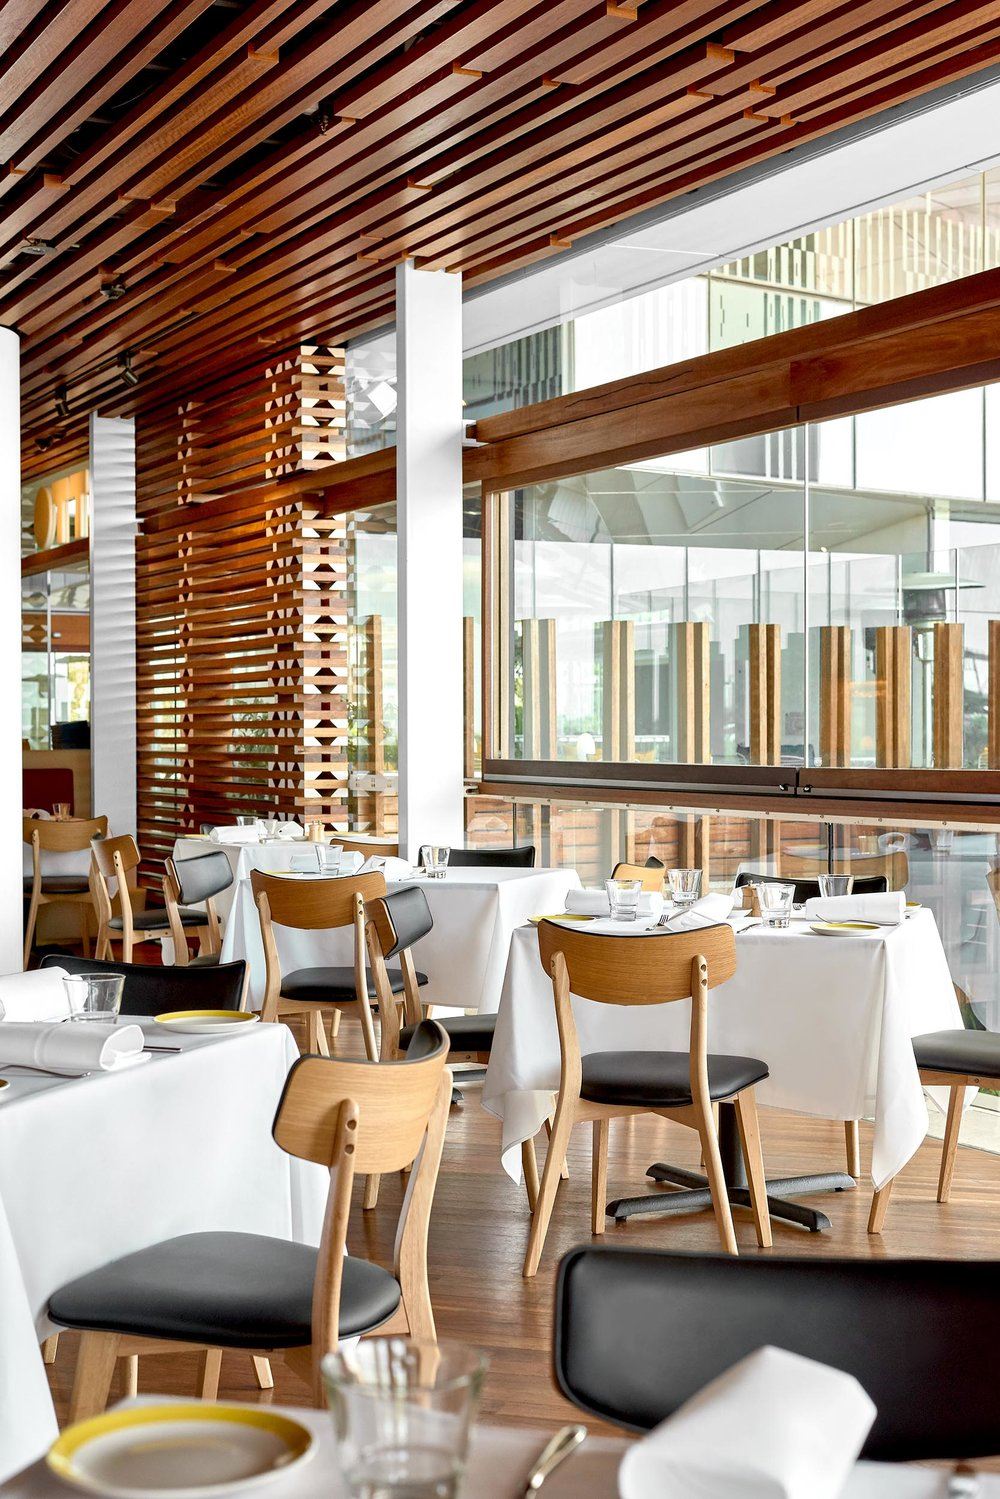 Architectural Interior OTTO Restaurant - Brisbane Advertising Photography, Brisbane Commercial Photography.jpg